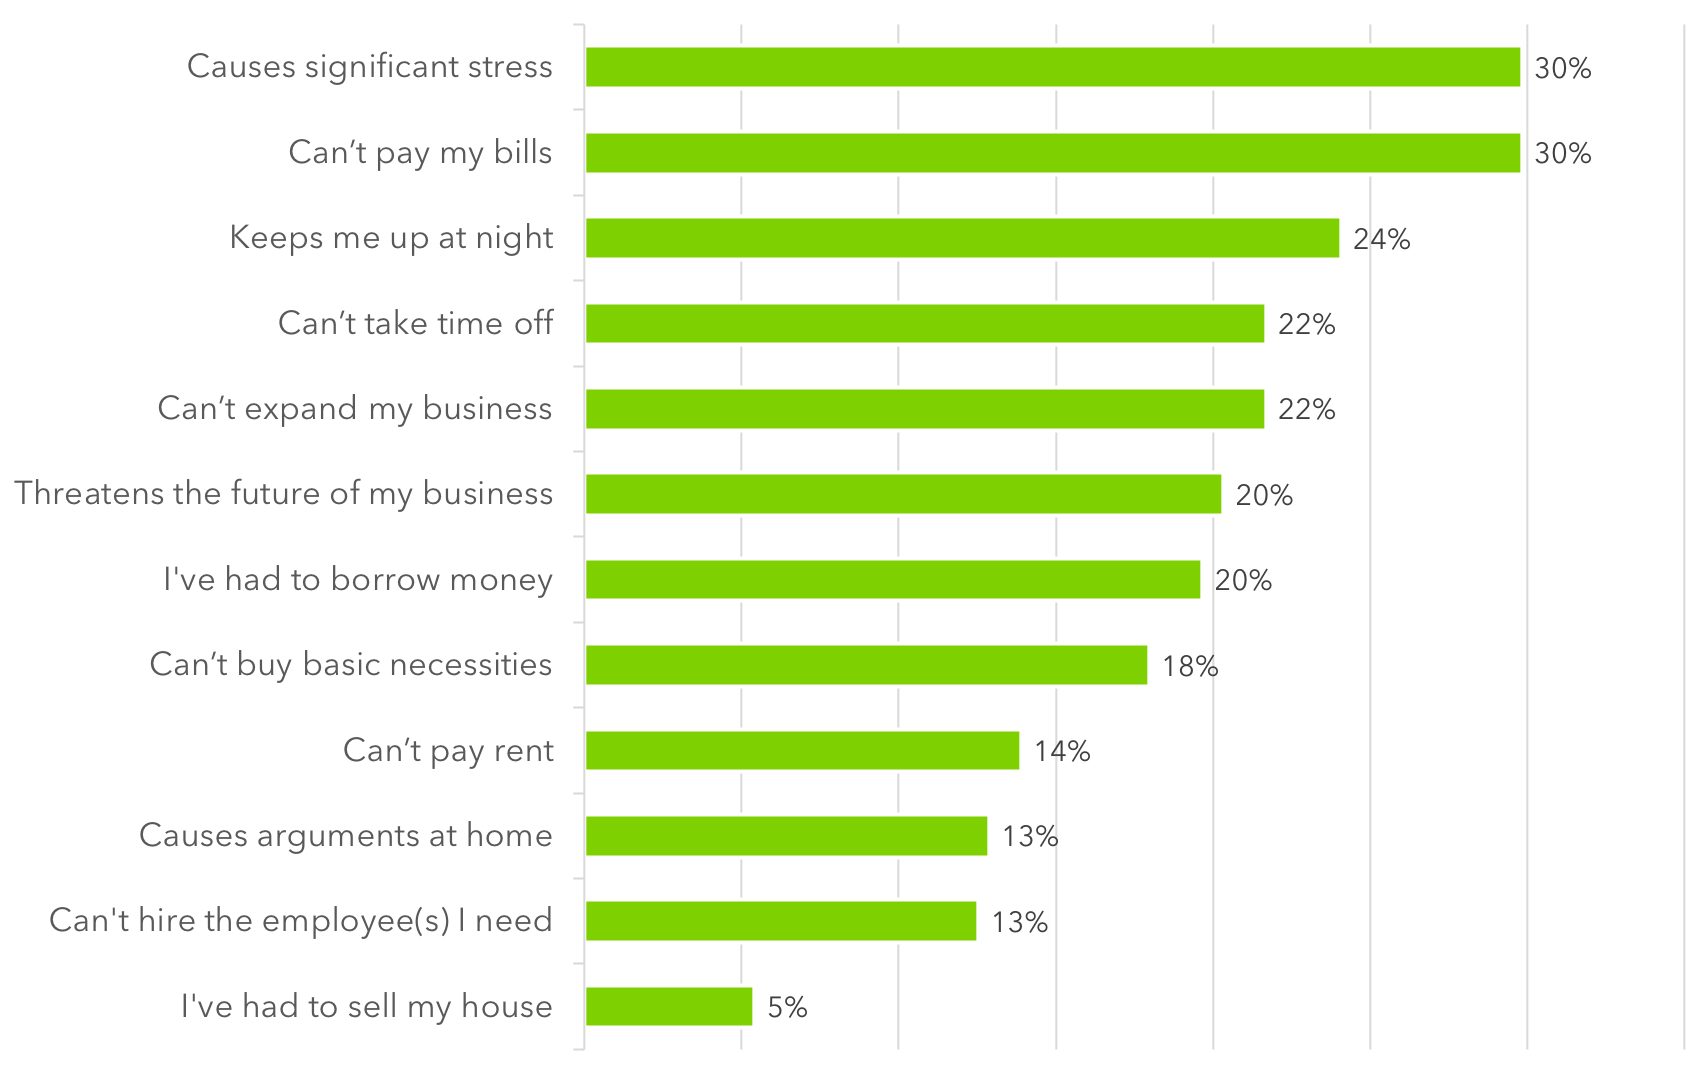 self-employed workers